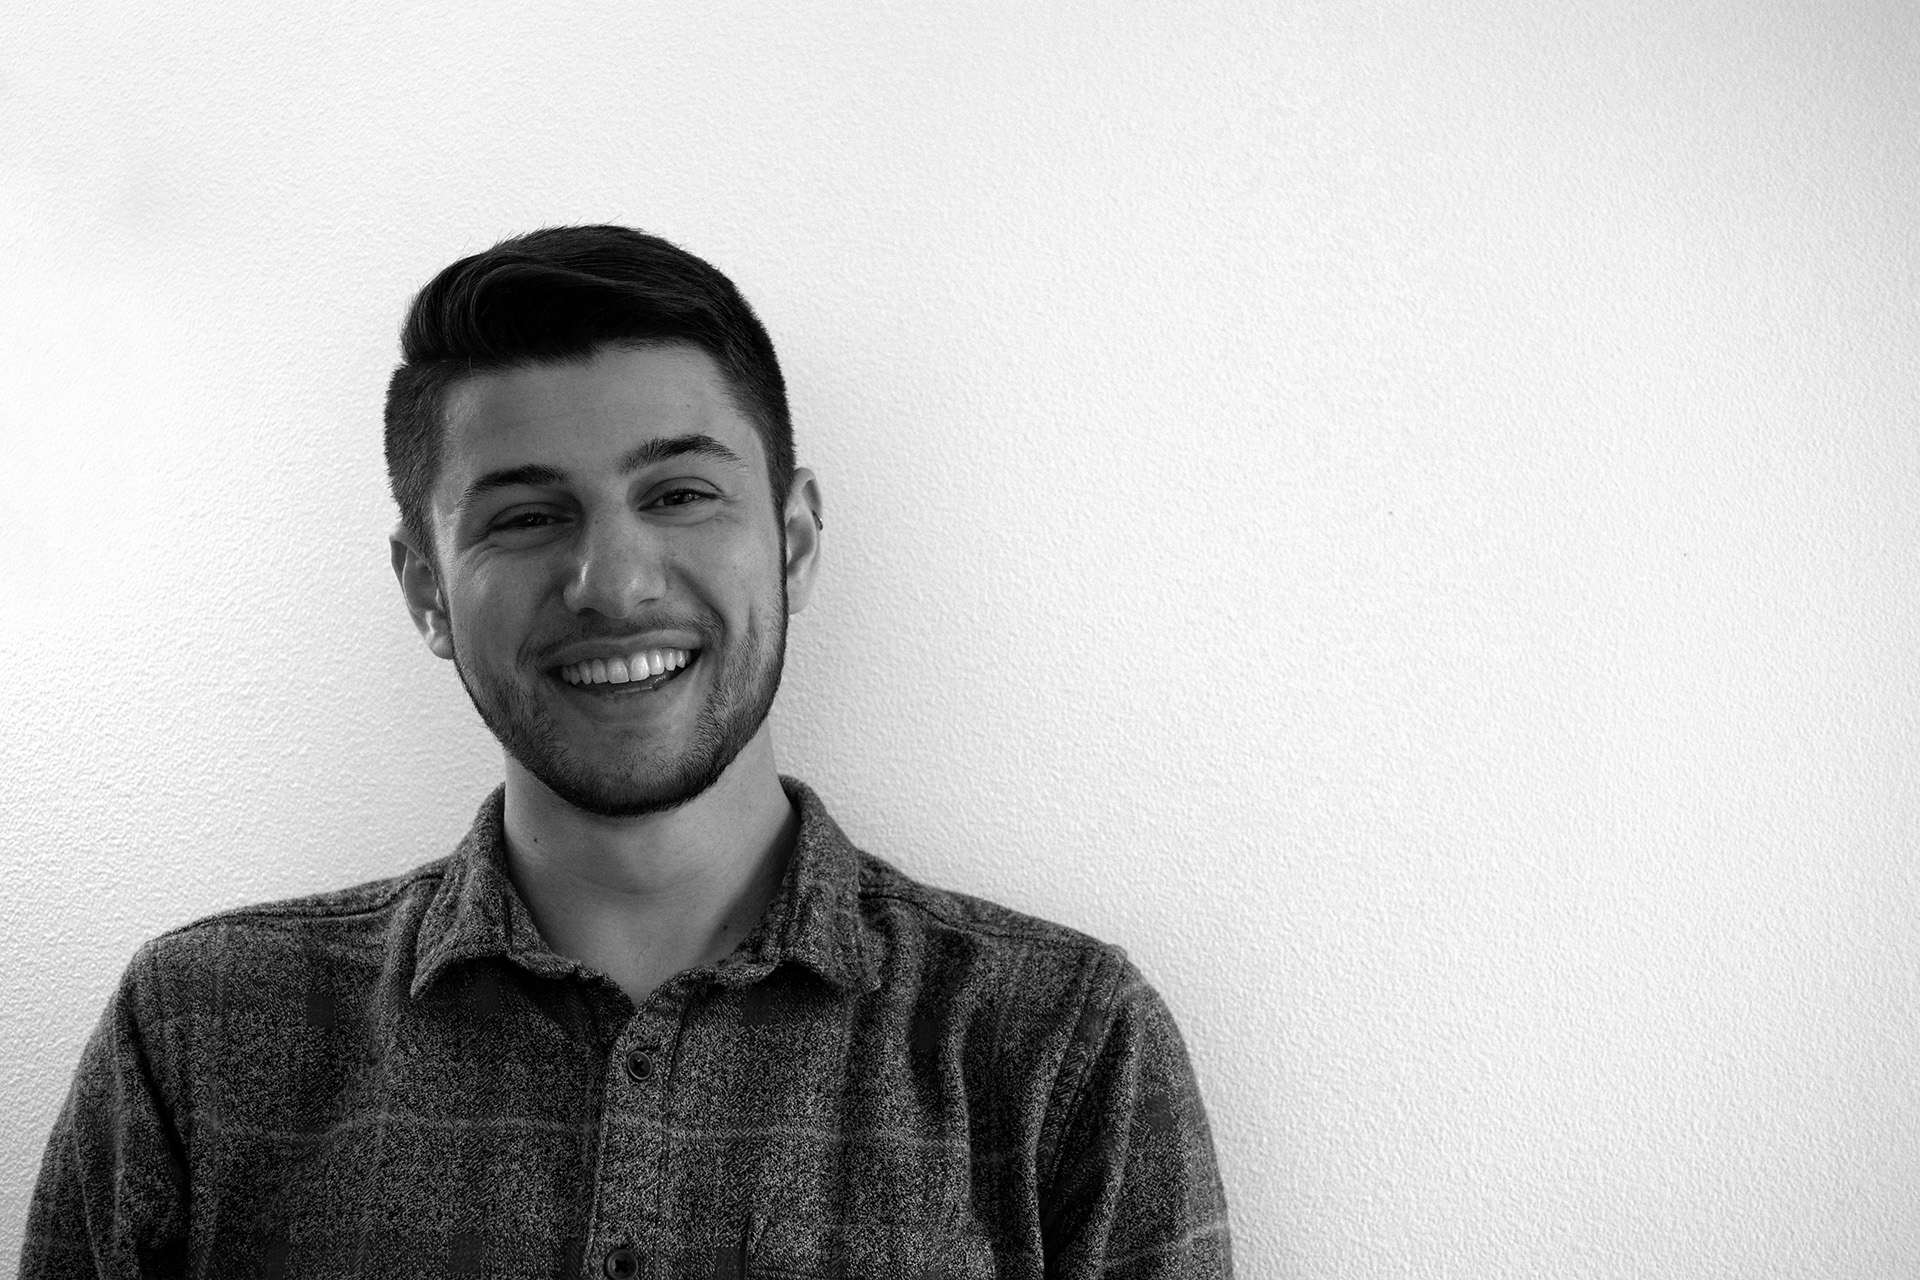 Eli Kahn - Eli is the designer of the Slip Rabbit logo. Eli studies Visual Communication Design at the University of Washington, where he also works with the Jacob Lawrence Gallery in the SOA+AH+D on publication design.Eli is helping us with visual production for the upcoming Slip Rabbit 3D printing